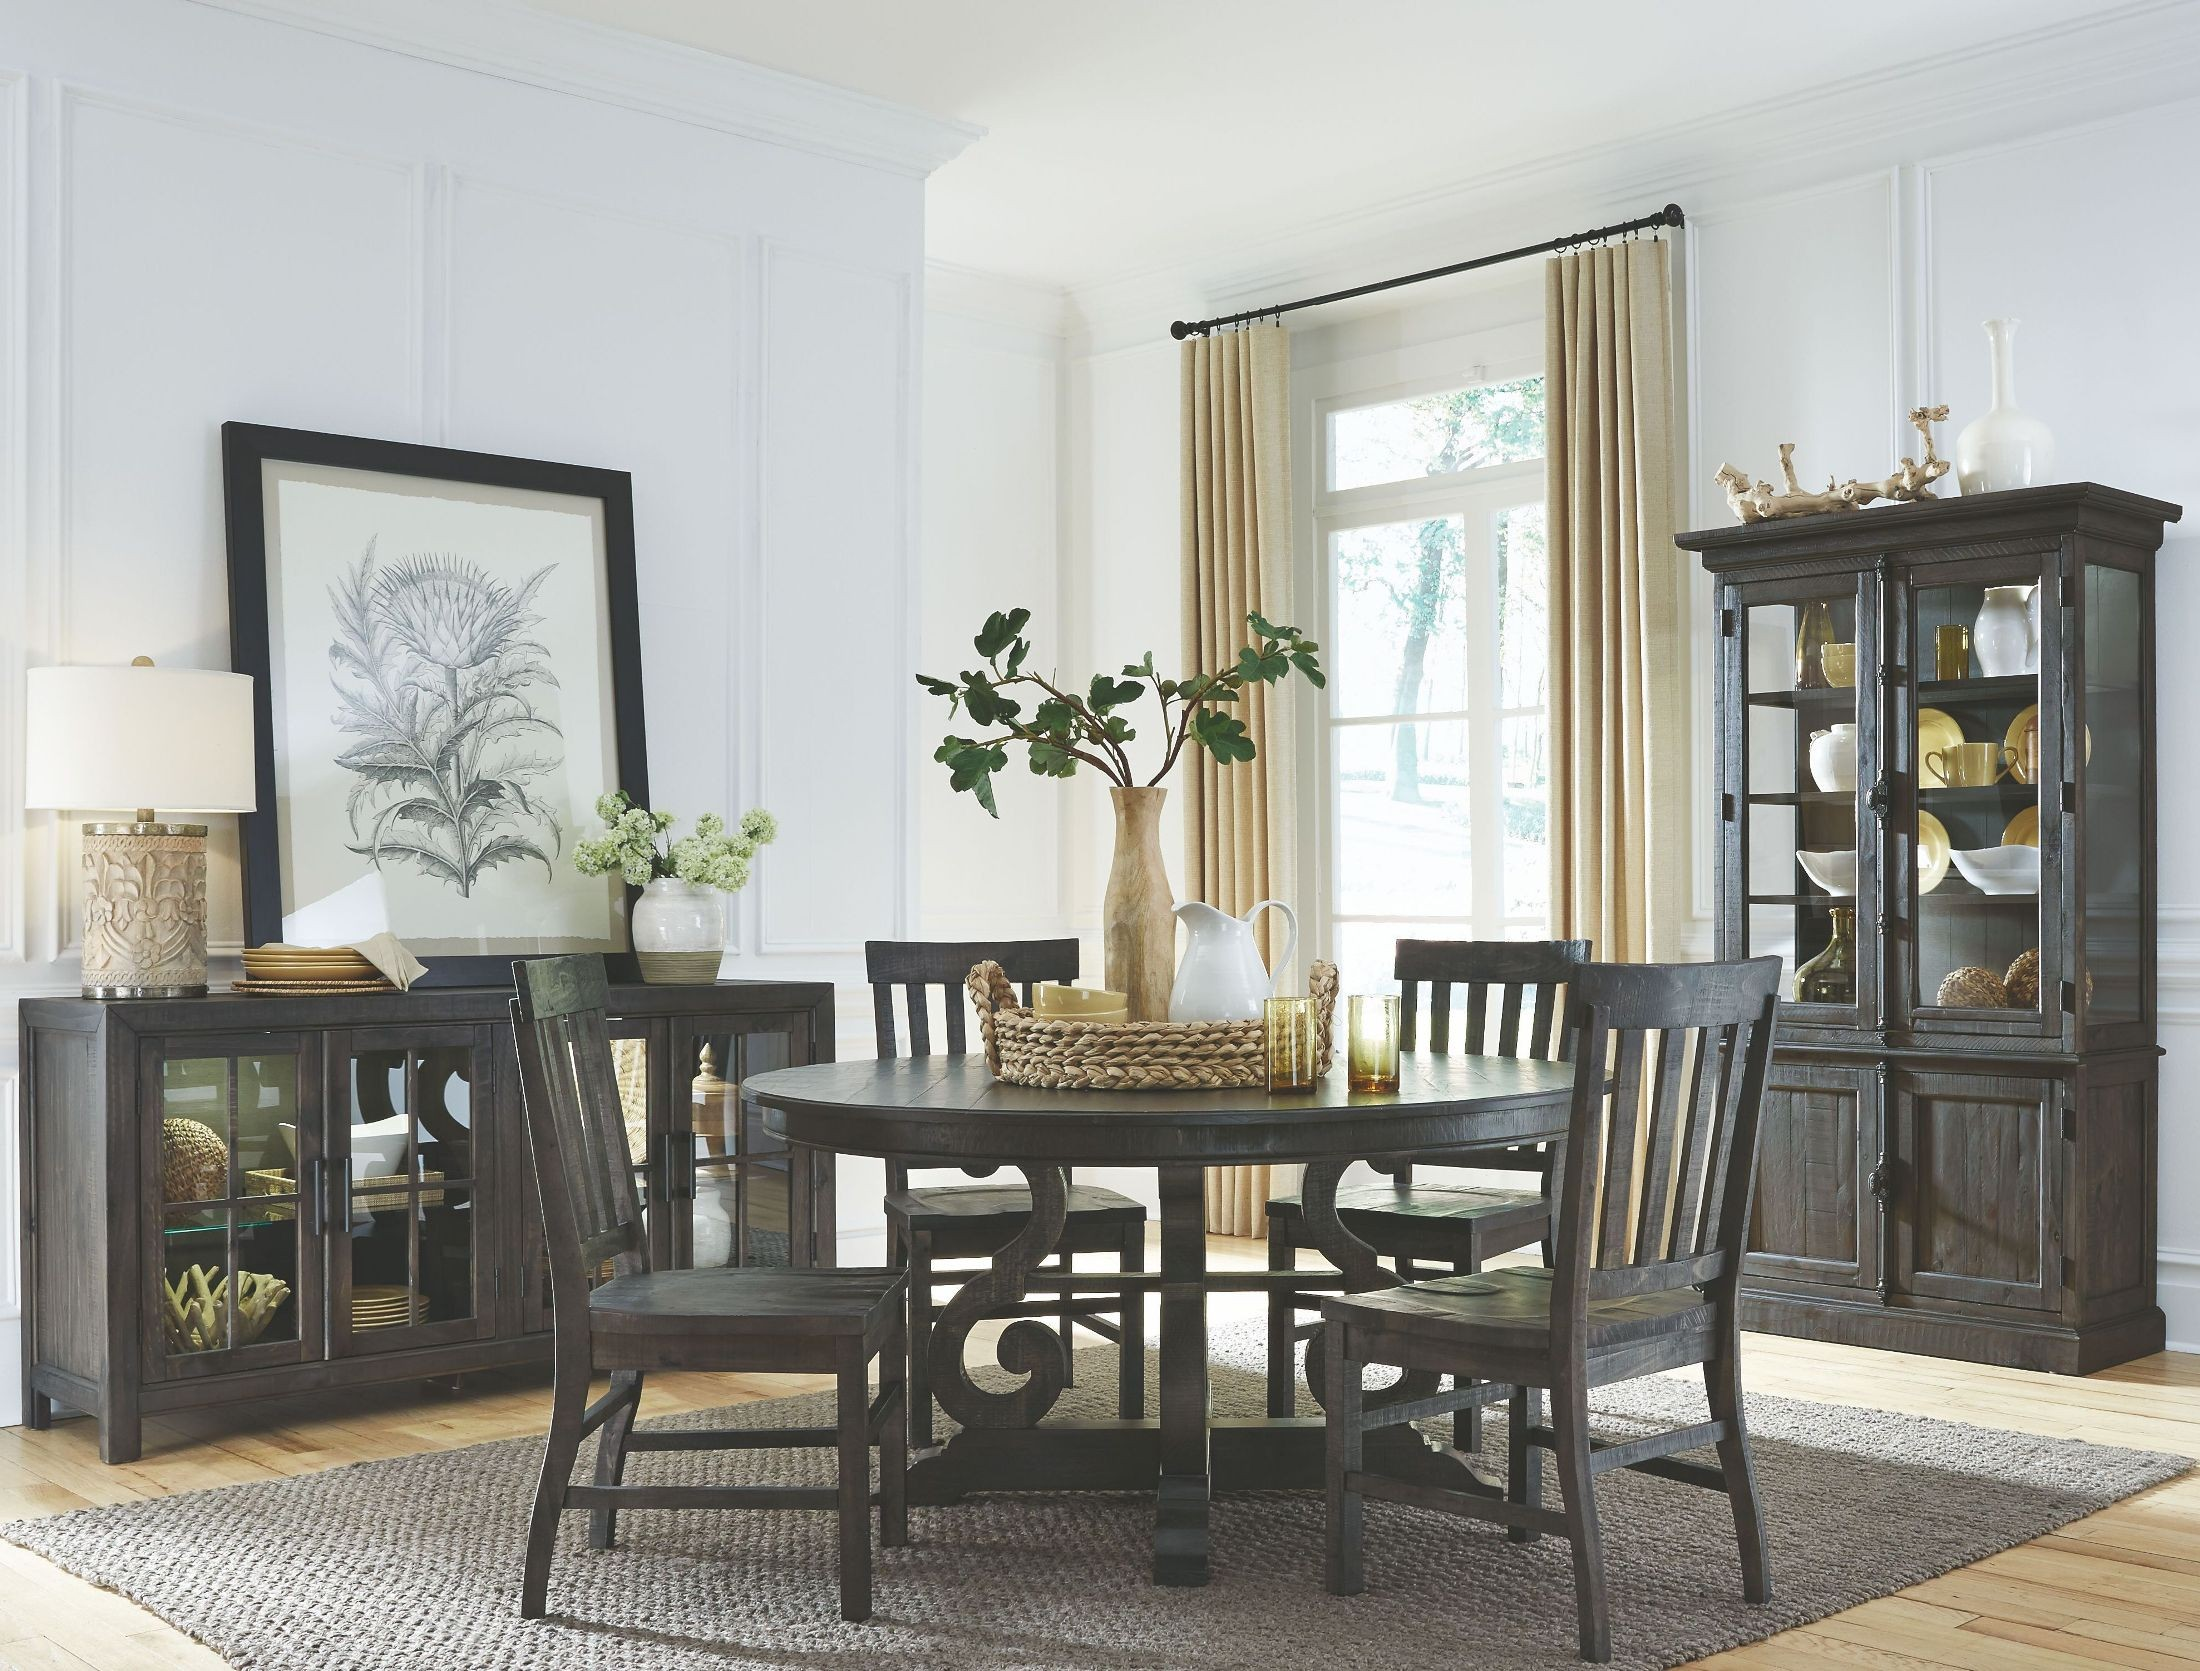 bellamy deep weathered pine round dining table from magnussen home coleman furniture. Black Bedroom Furniture Sets. Home Design Ideas